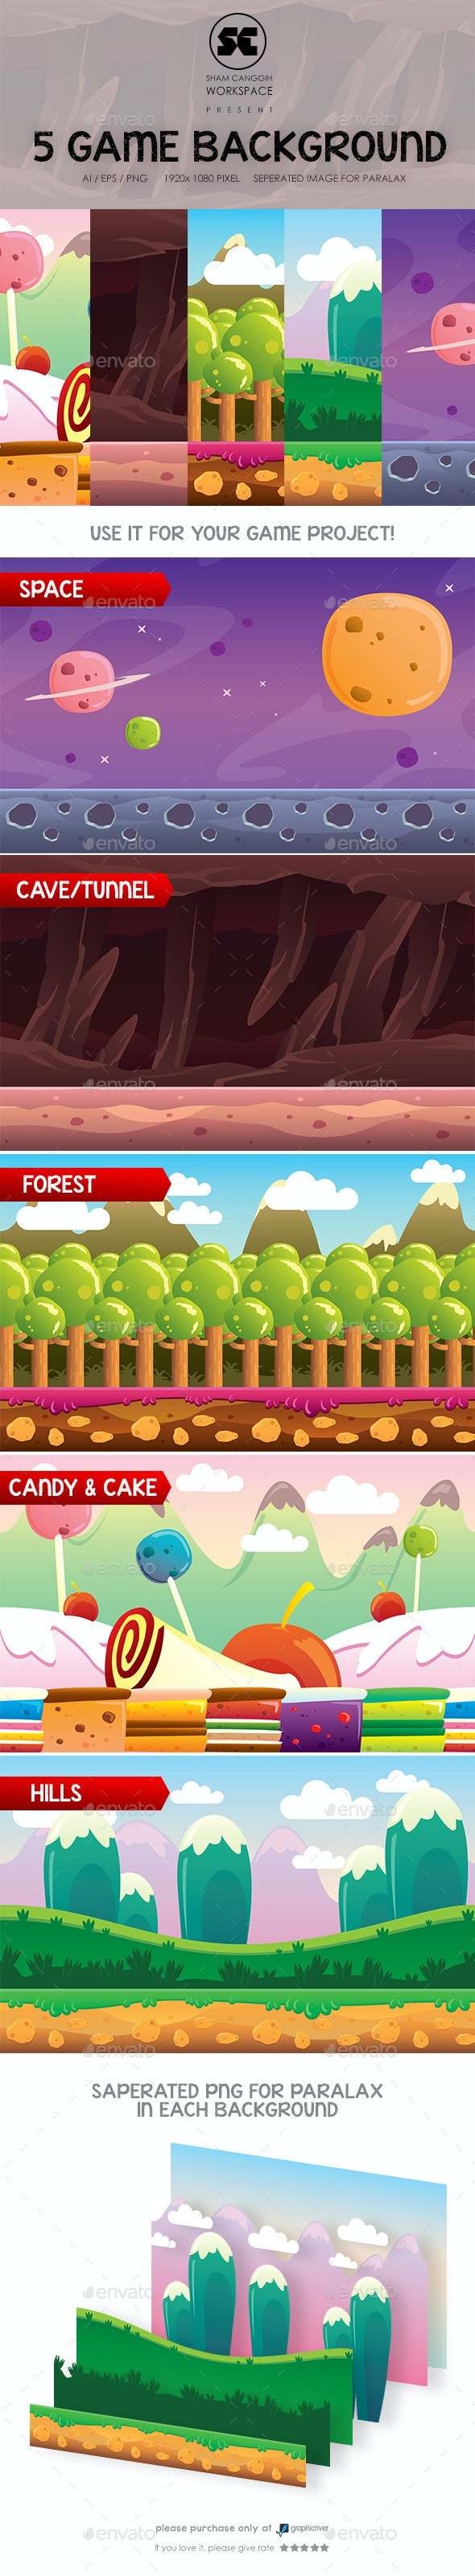 5 in 1 Game Background - Backgrounds Game Assets